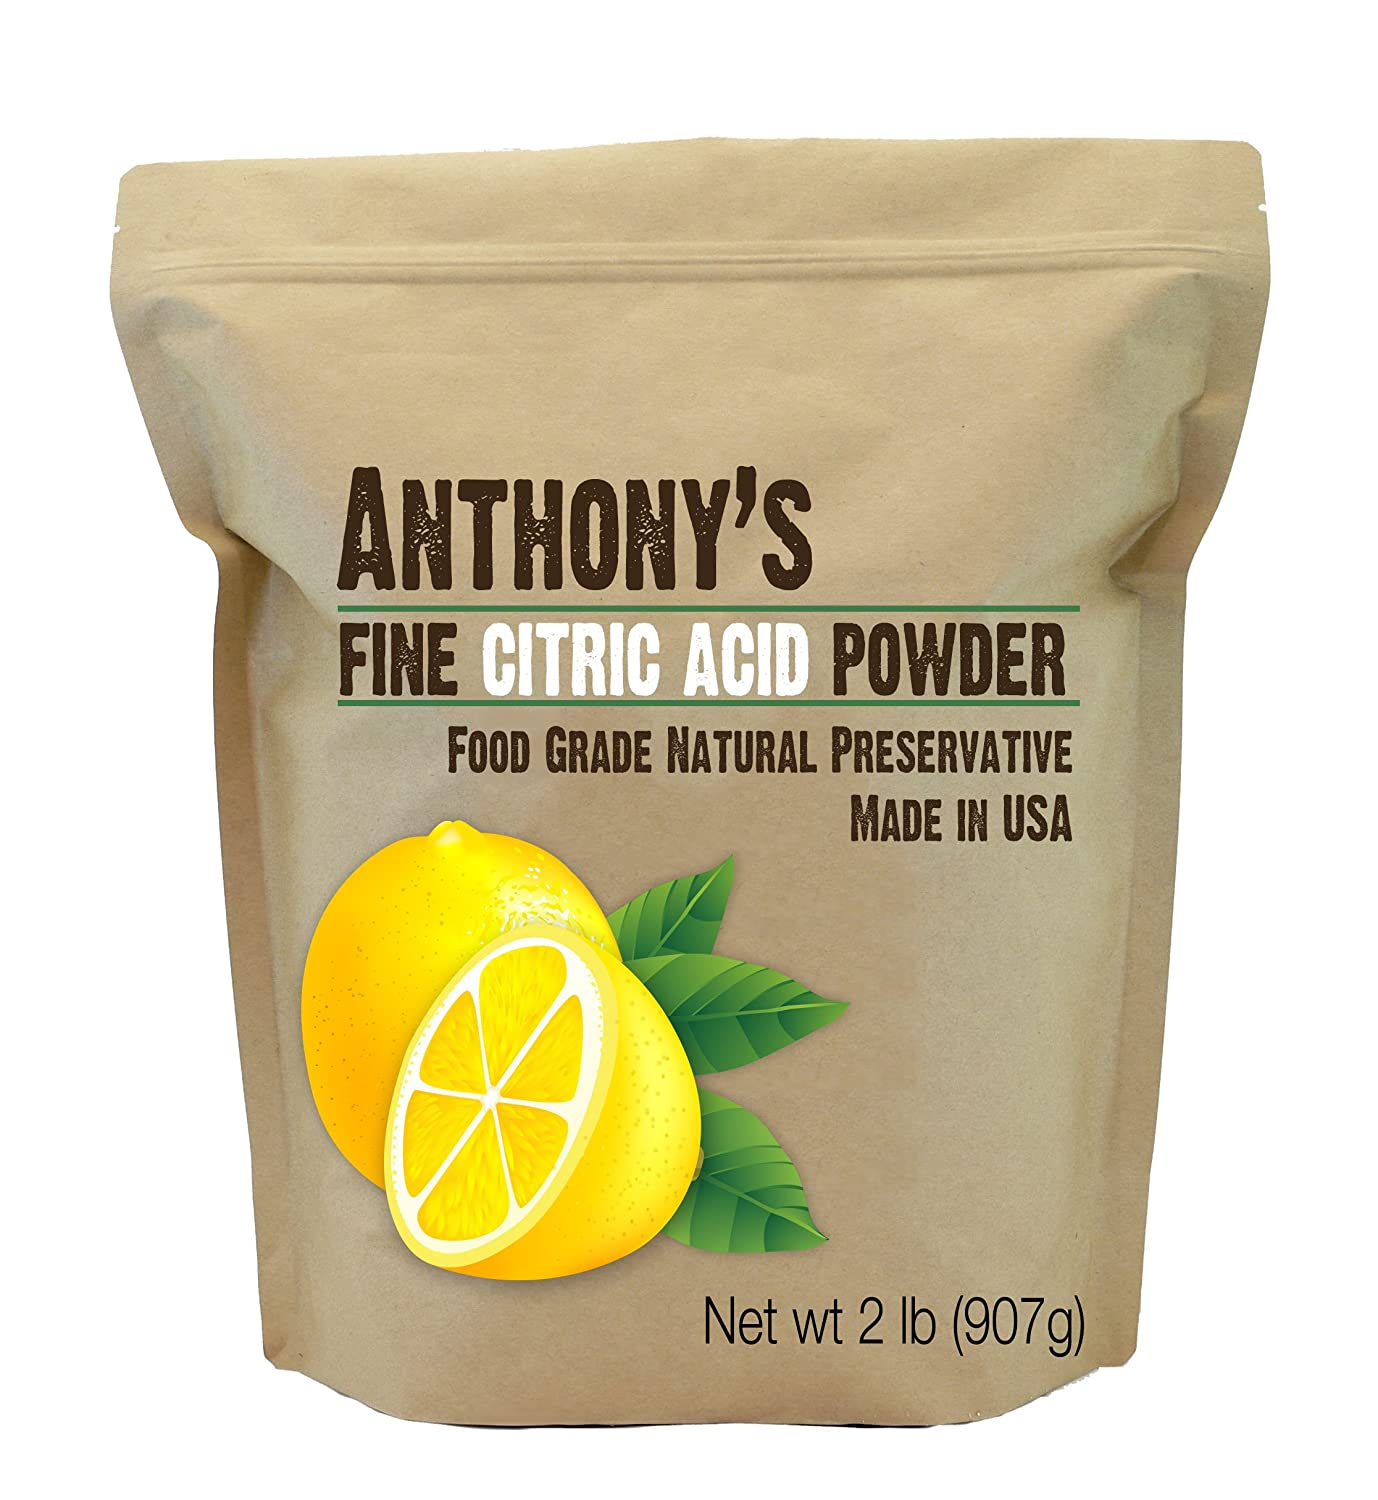 Anthony's Citric Acid Powder 2lb, Natural Preservative, 100% Pure Food Grade